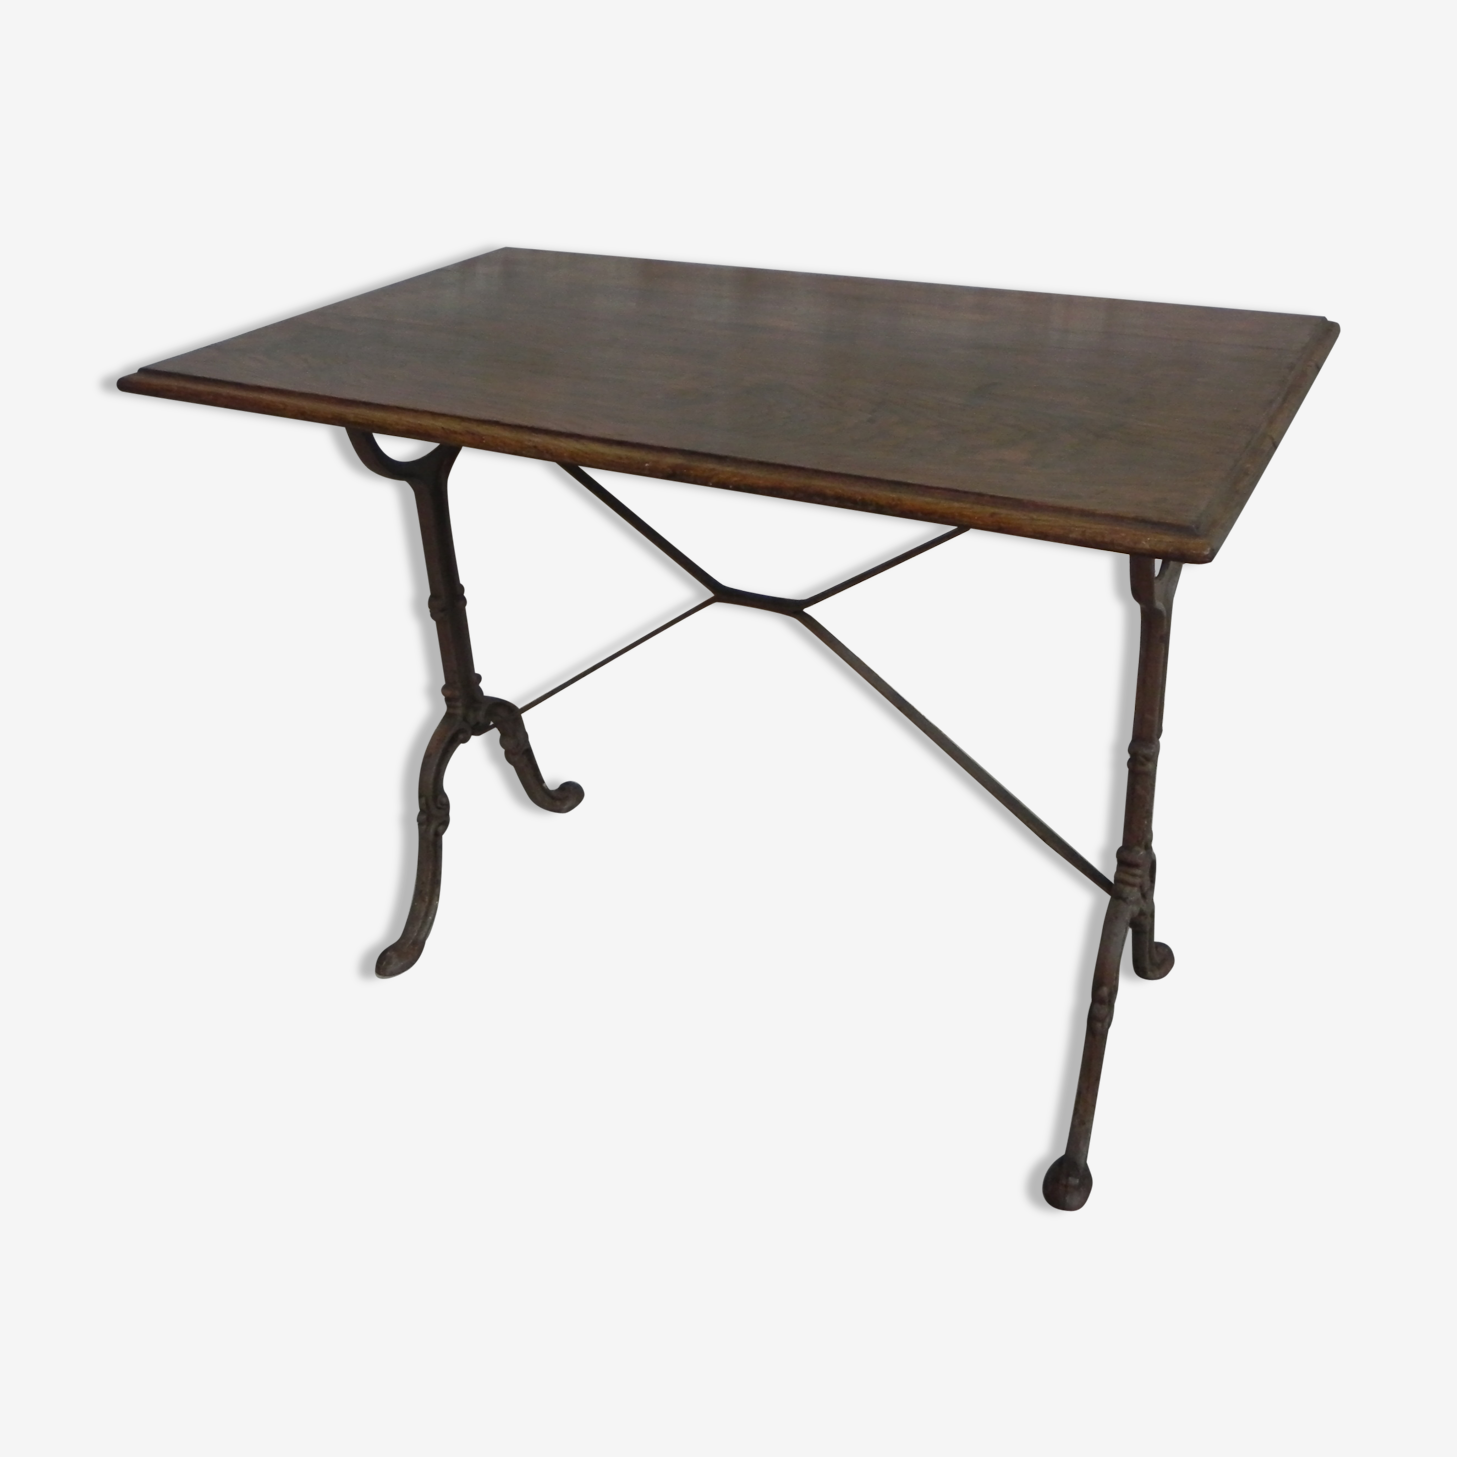 Bistro table with oak top and cast iron base